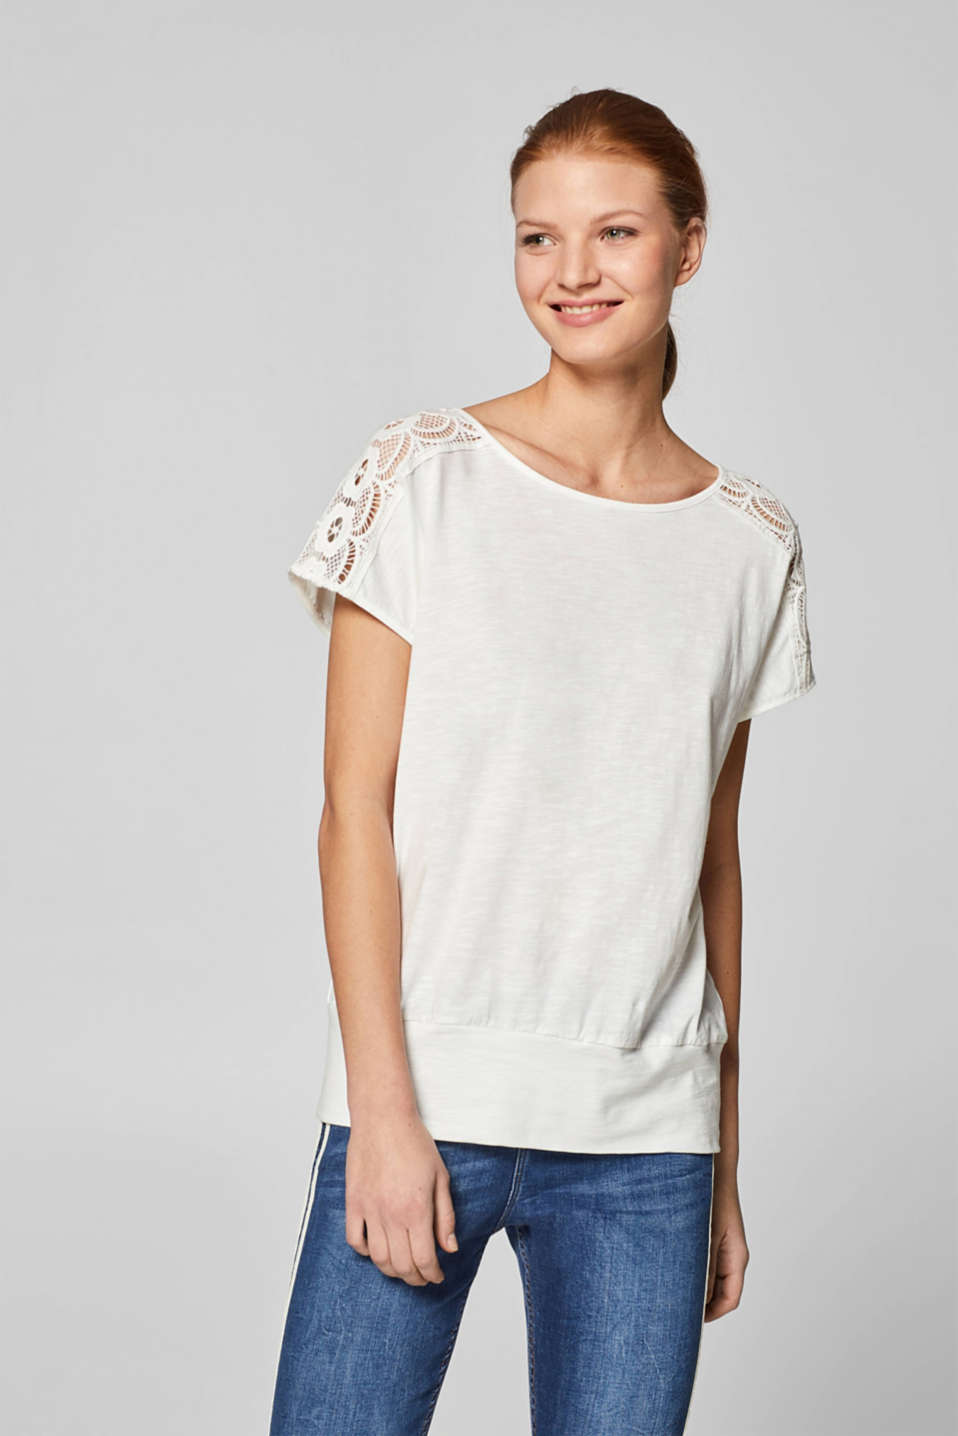 edc - Lace top with organic cotton, 100% cotton